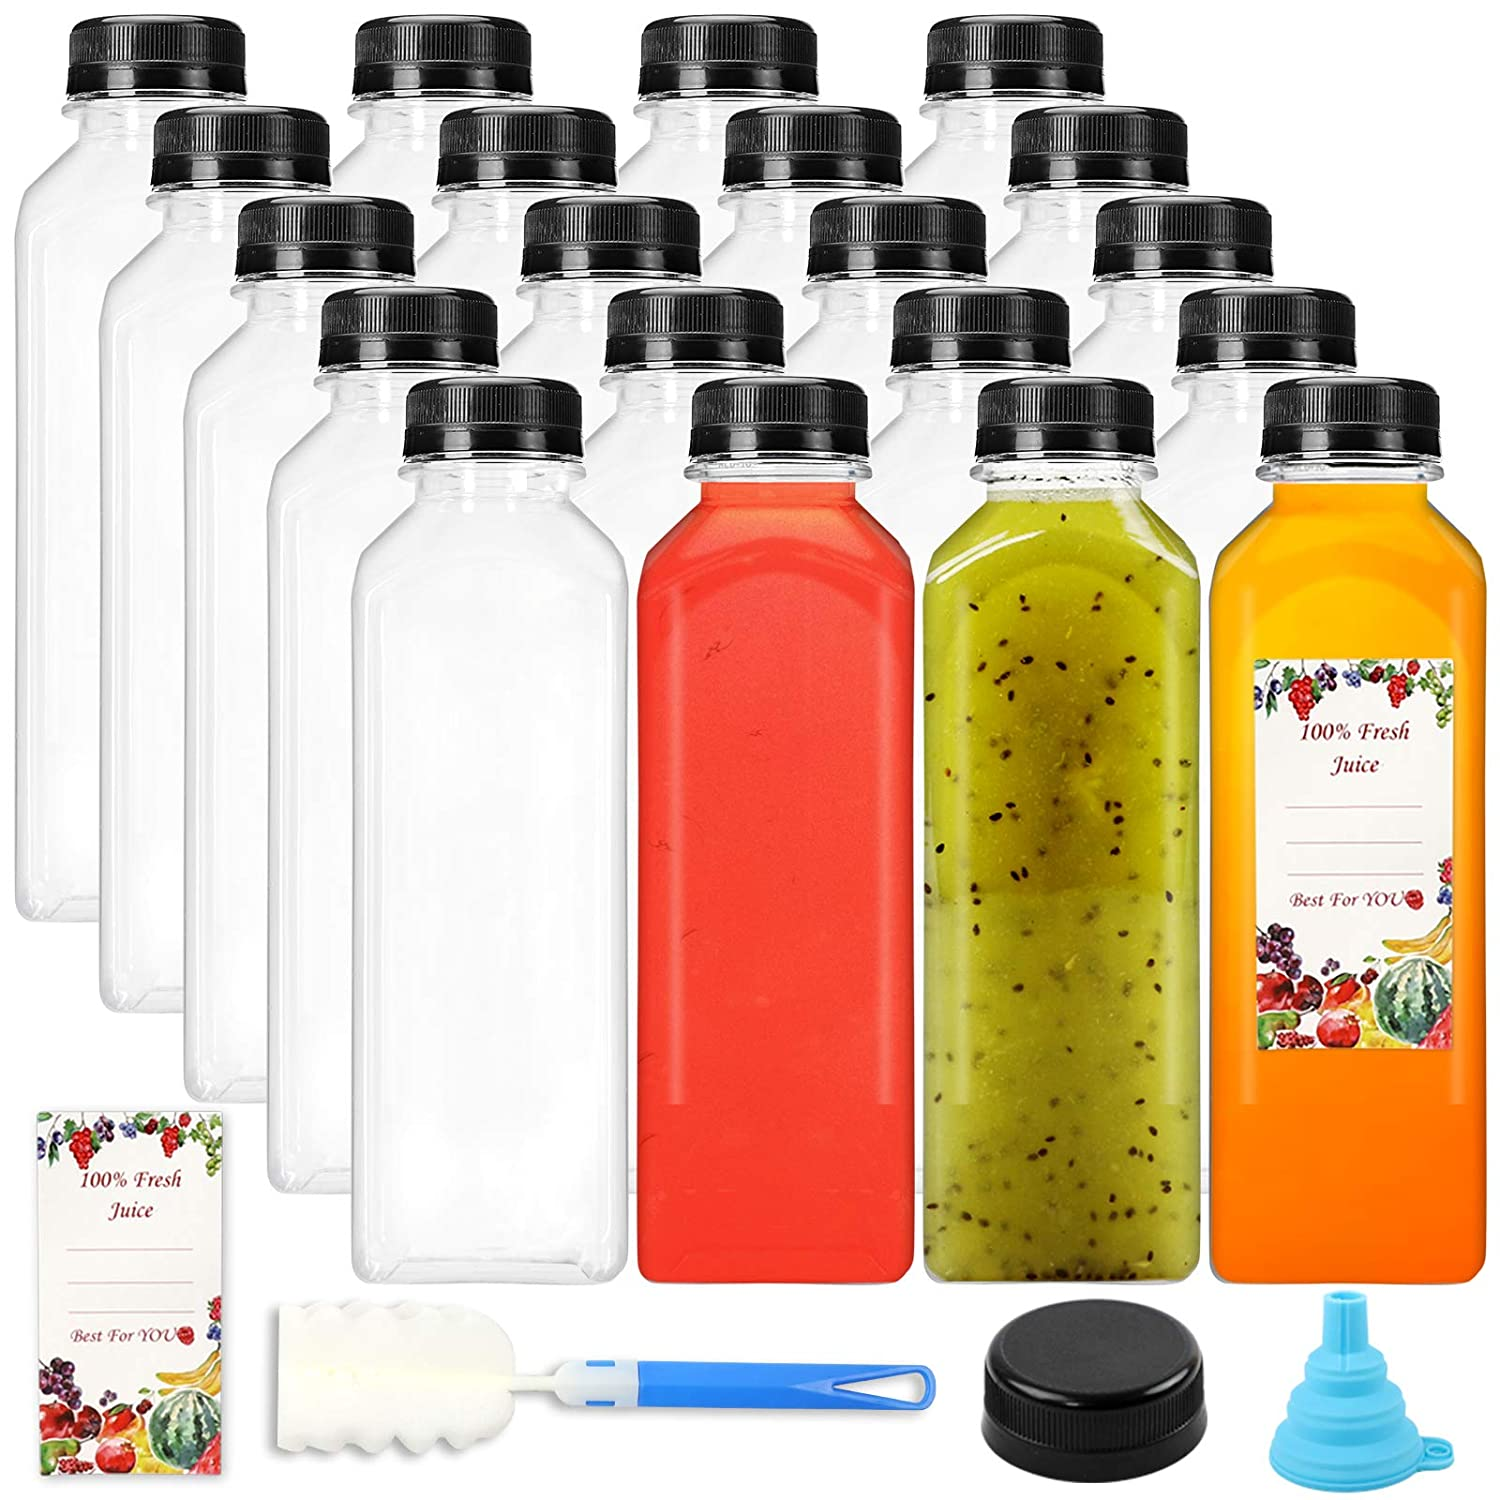 SUPERLELE 16oz 20pcs Empty PET Plastic Juice Bottles Reusable Clear Disposable Containers with Black Tamper Evident Caps Lids for Juice, Milk and Other Beverages